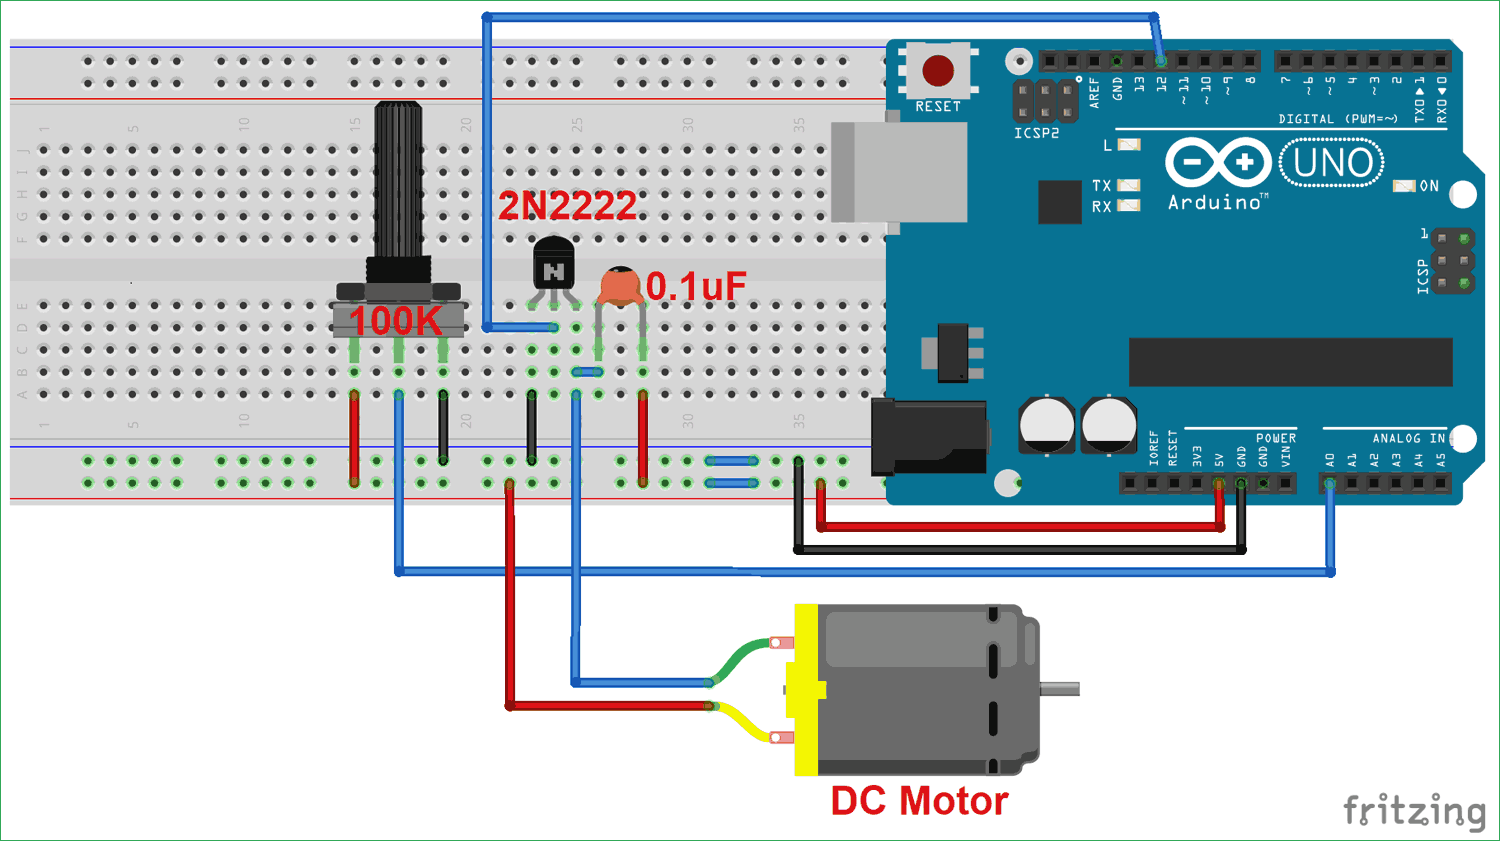 Ac Motor Sd Picture Wiring Diagram | Wiring Diagram on